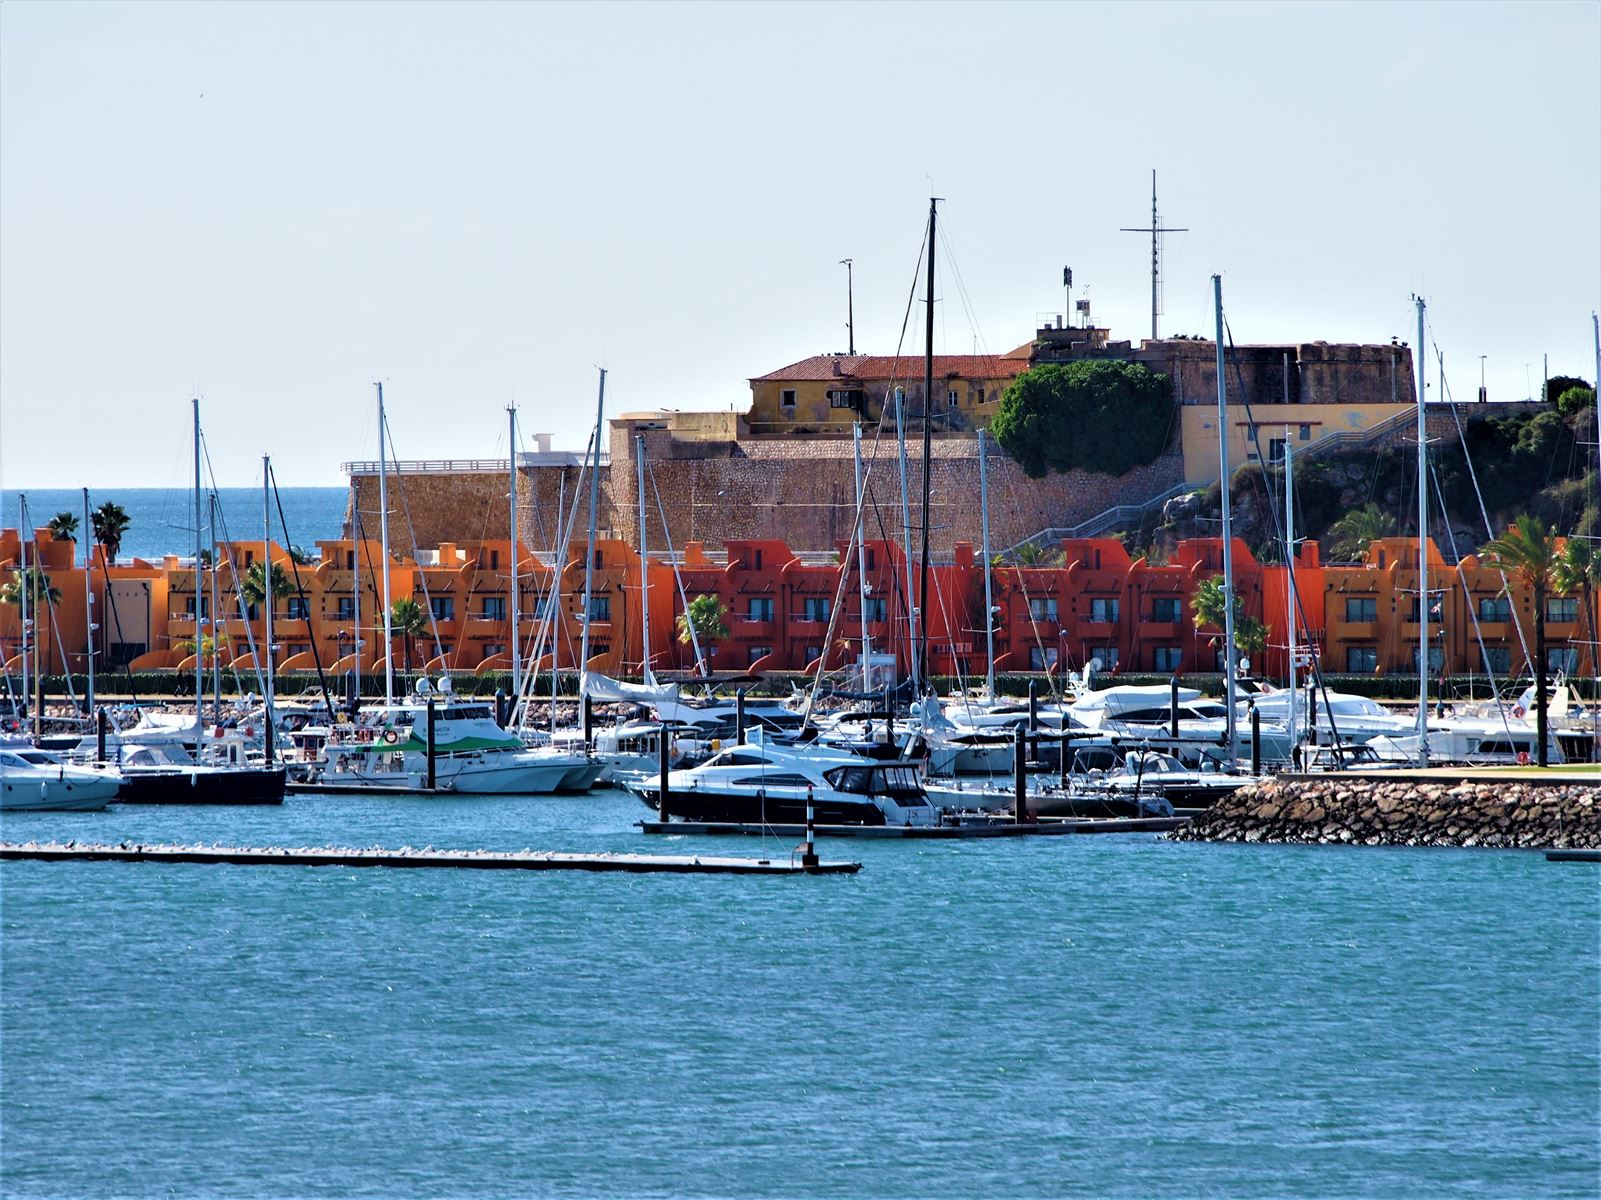 Looking towards Portimao showing the marina, the brightly coloured buildings of Tivoli Marina hotel and behind is the Fort of Santa Catarina.